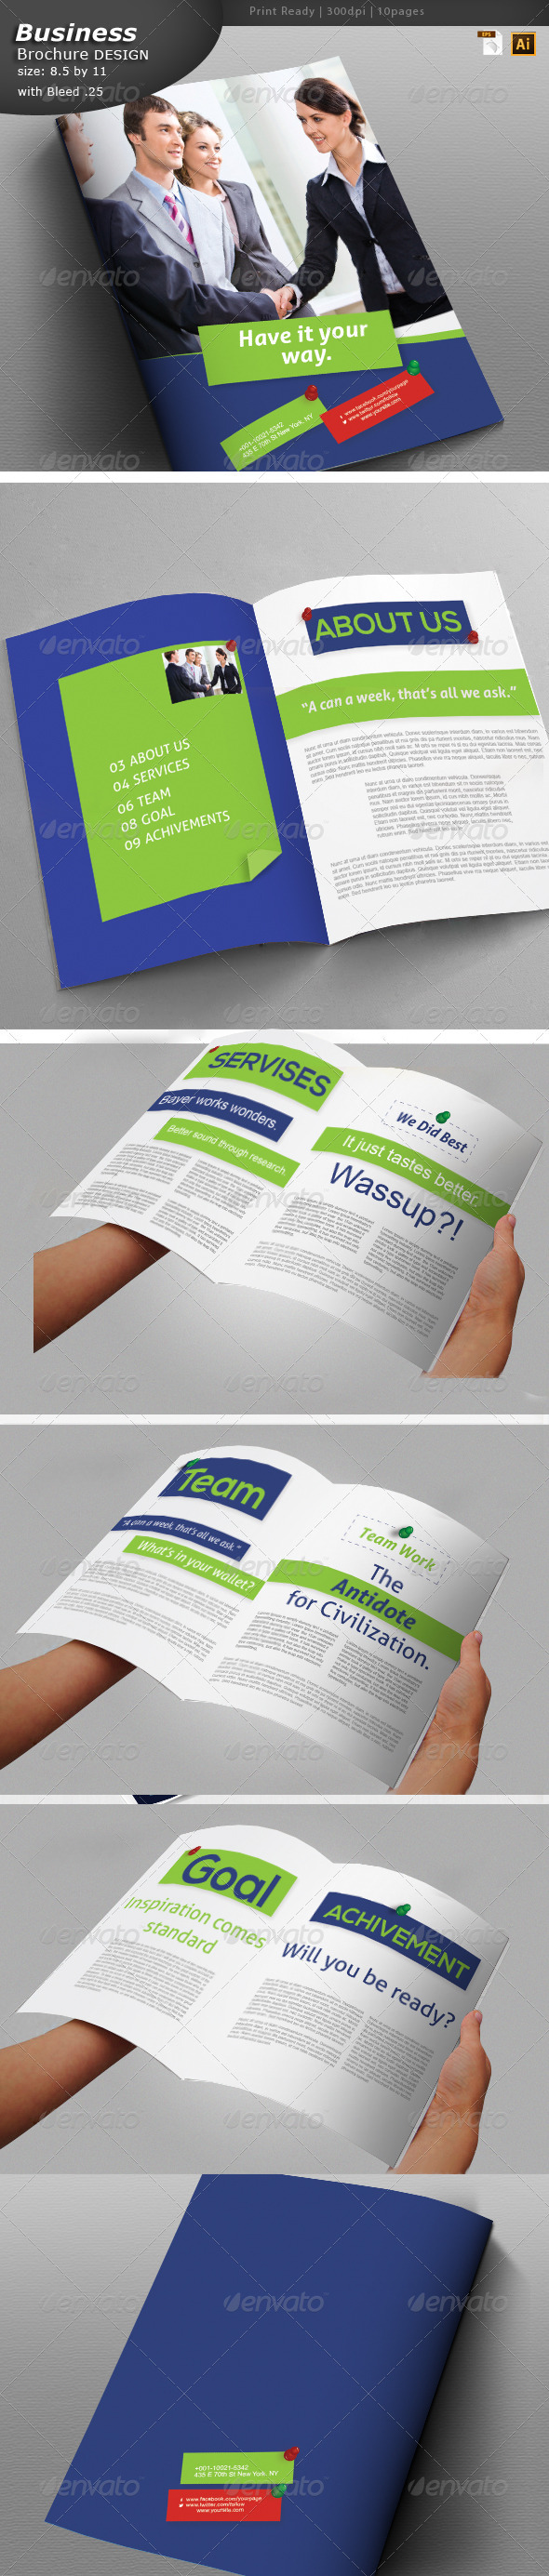 GraphicRiver Business Brochure Design 6044146